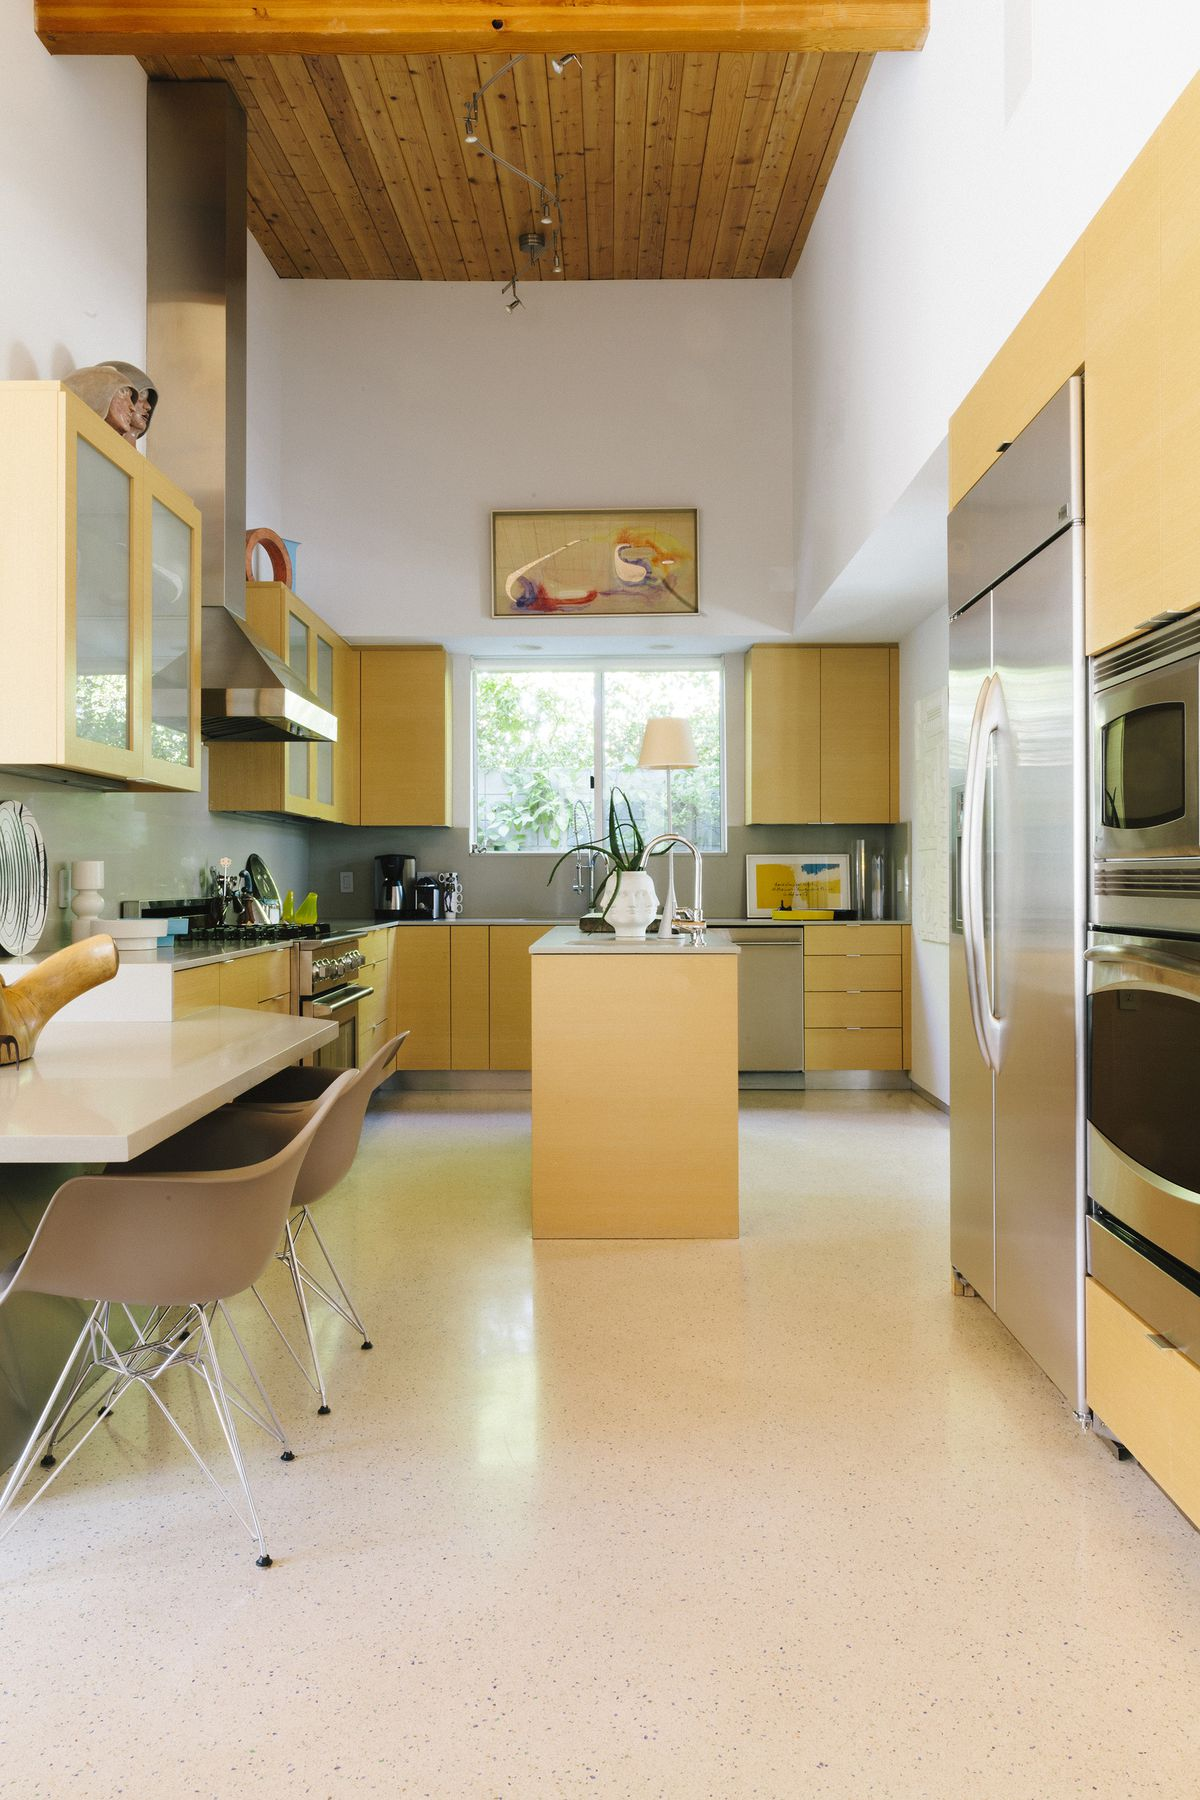 A kitchen with light yellow cabinetry. There is a wooden table with chairs. The ceiling is made of wood. There are windows over the sink area.